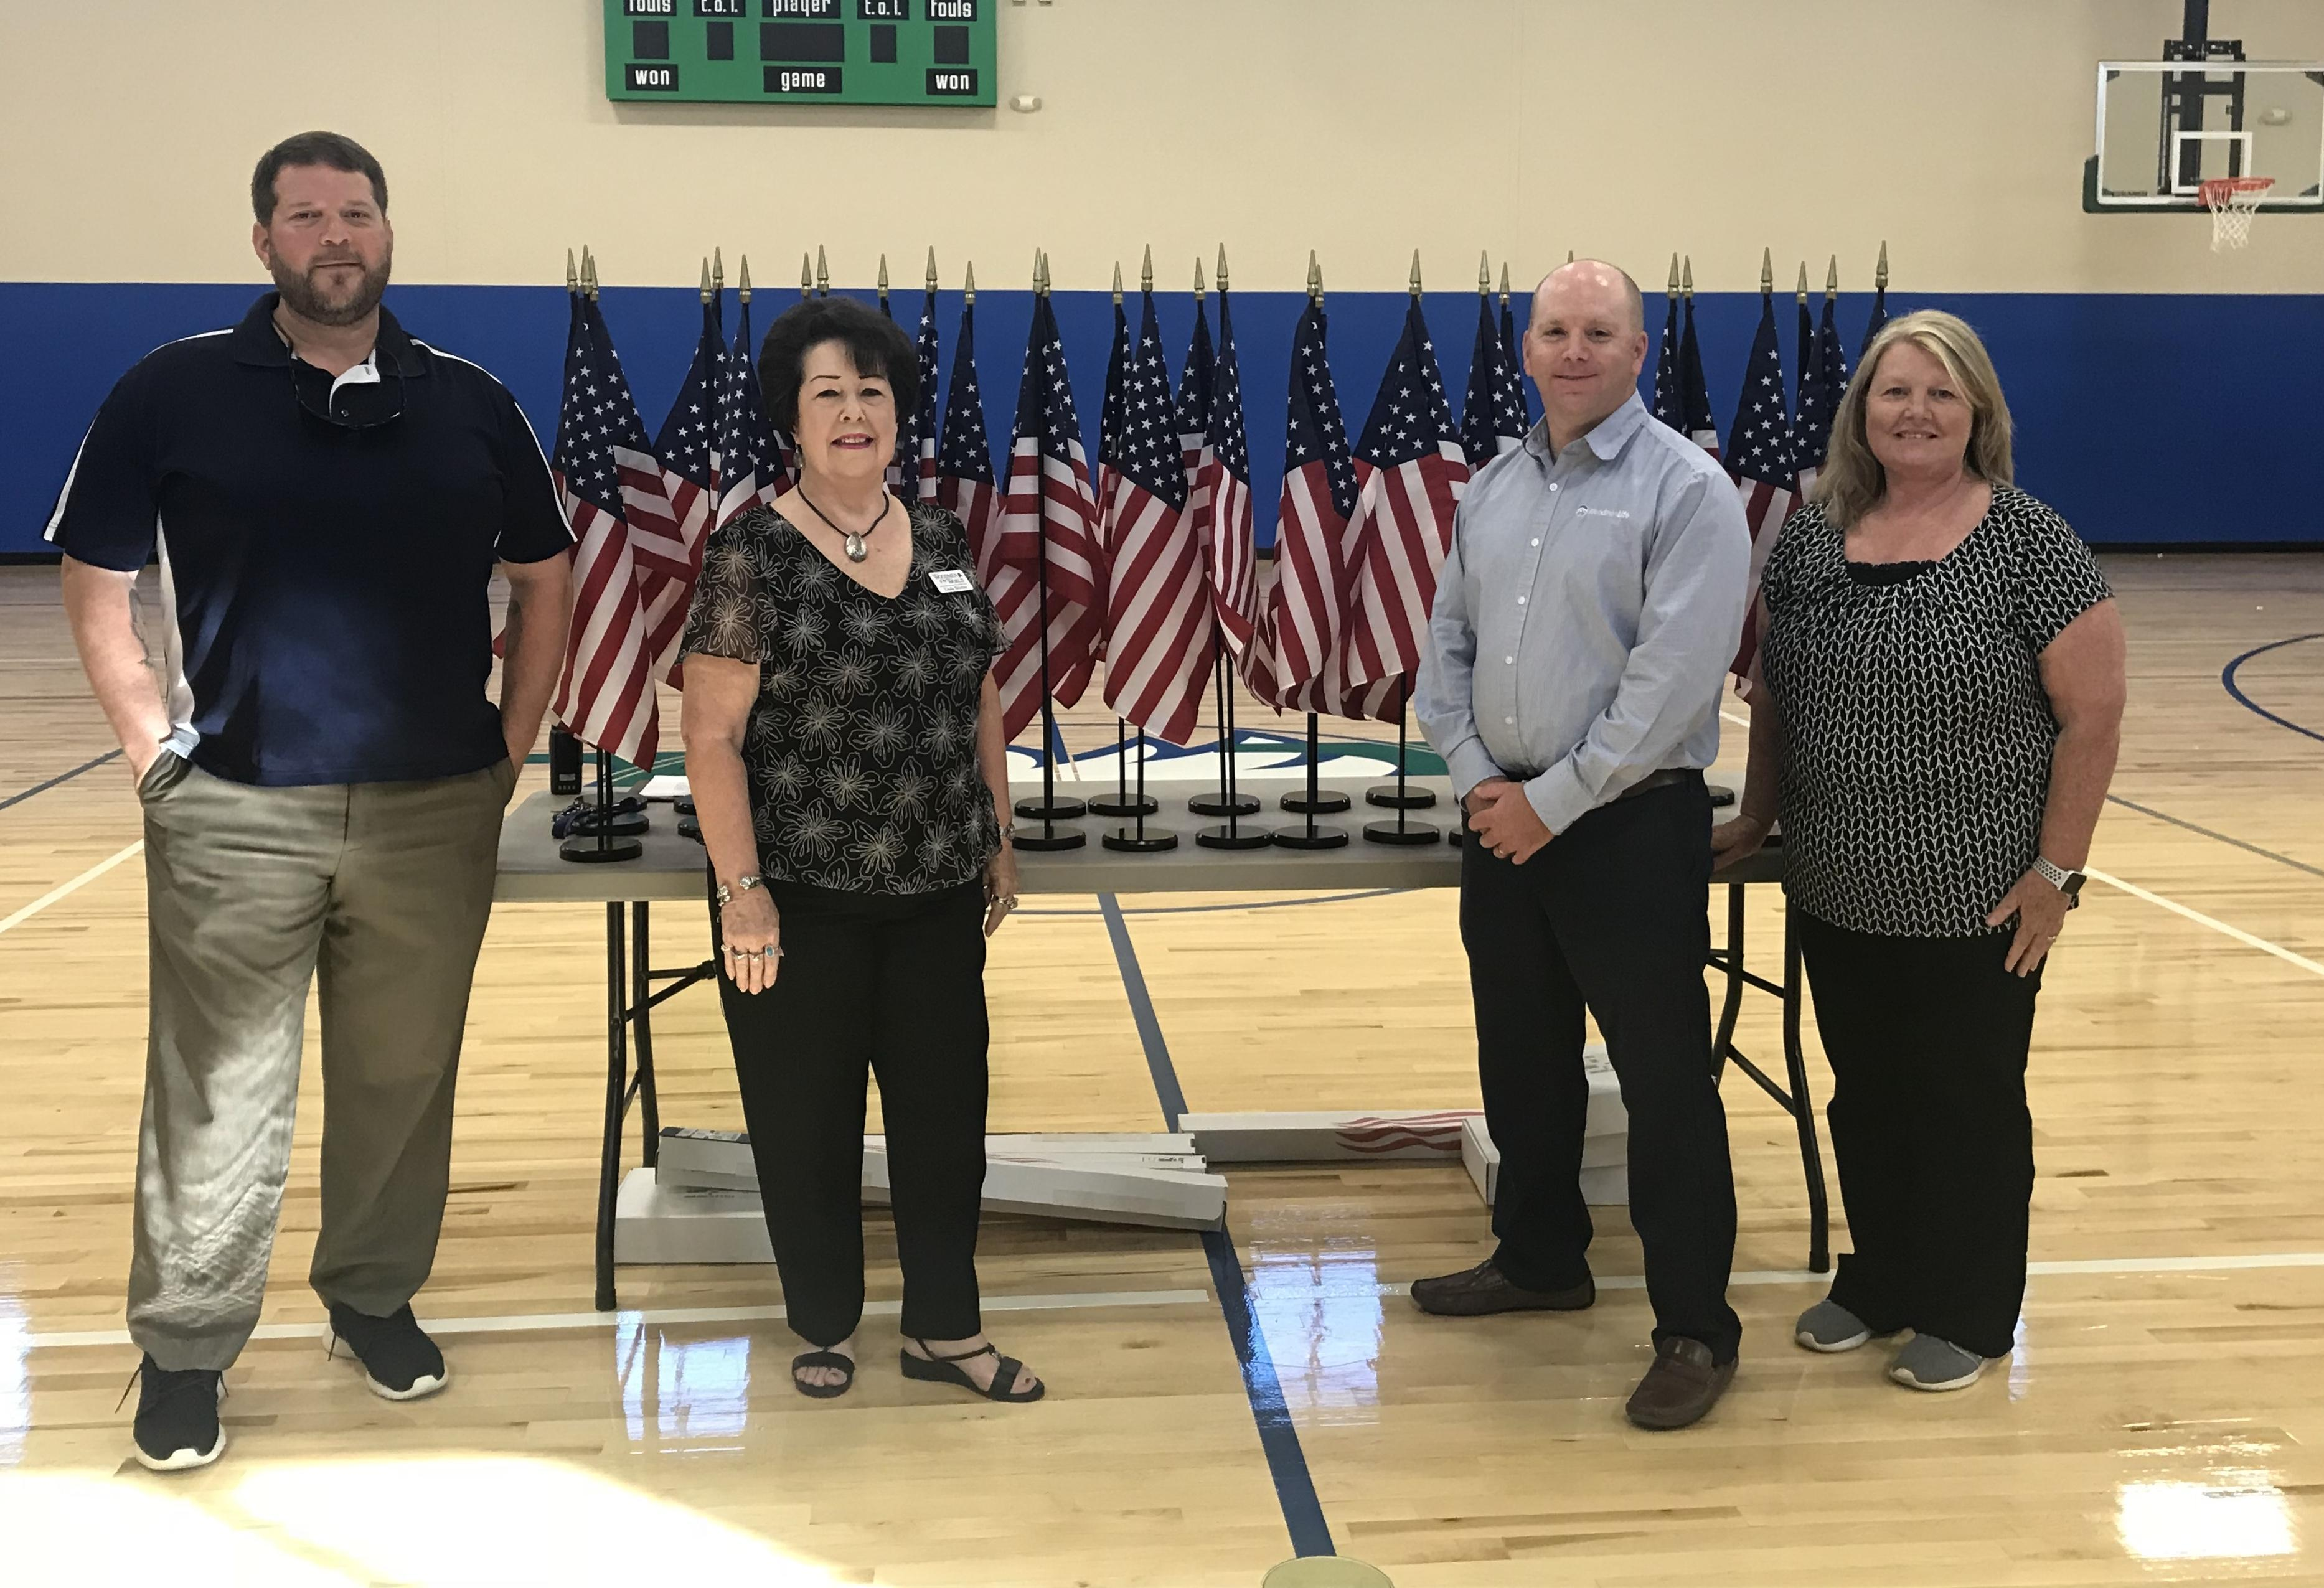 Woodmen Life Donates Flags to UCA Middle School Image